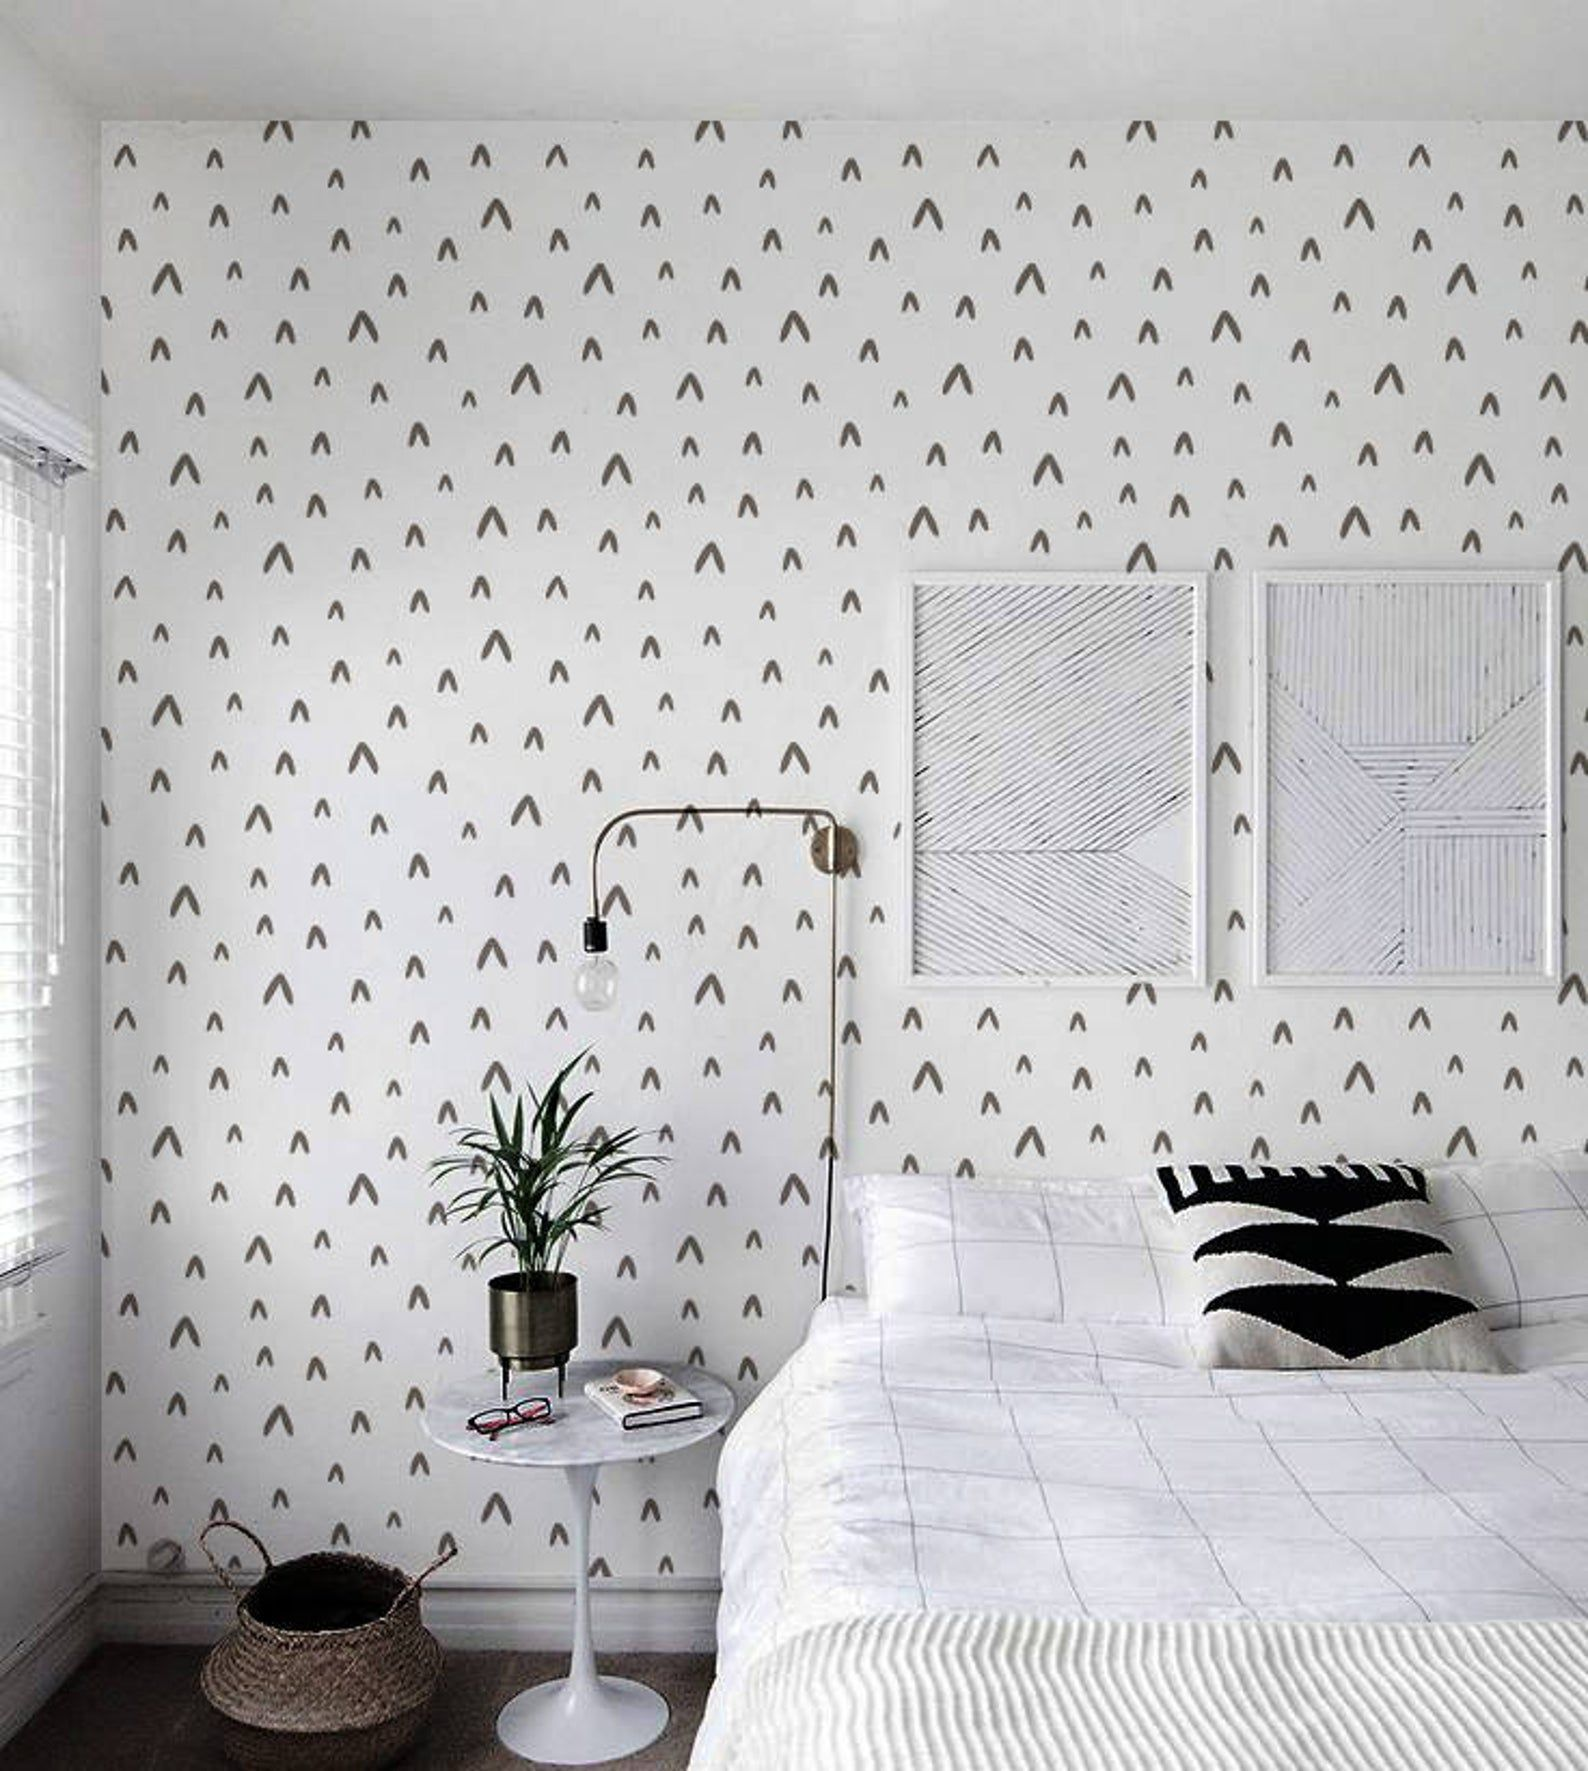 Renters Wallpaper Removable Sticker Wallpaper Cute Abstract In Etsy In 2020 Renters Wallpaper Room Large Wall Decor